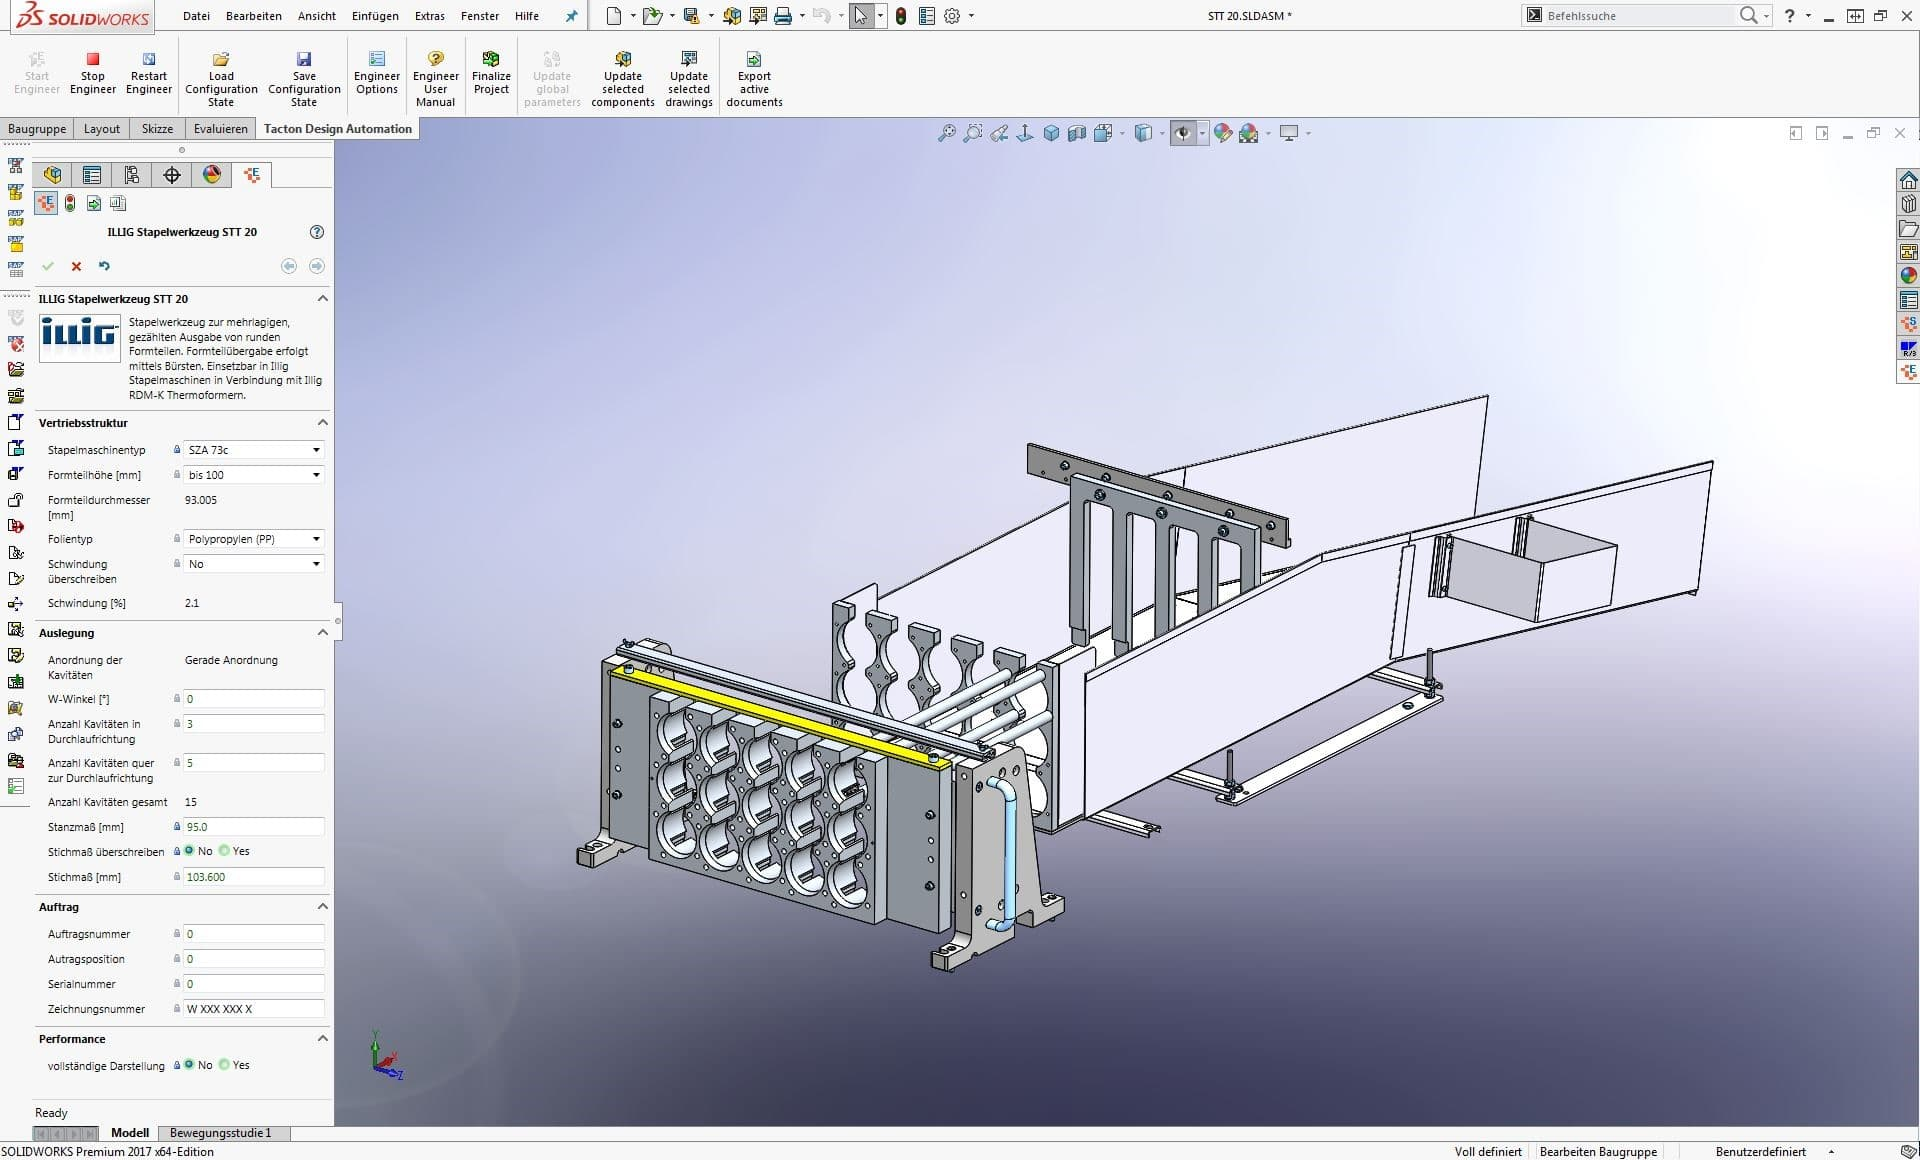 Design_Automation_fuer_Solidworks